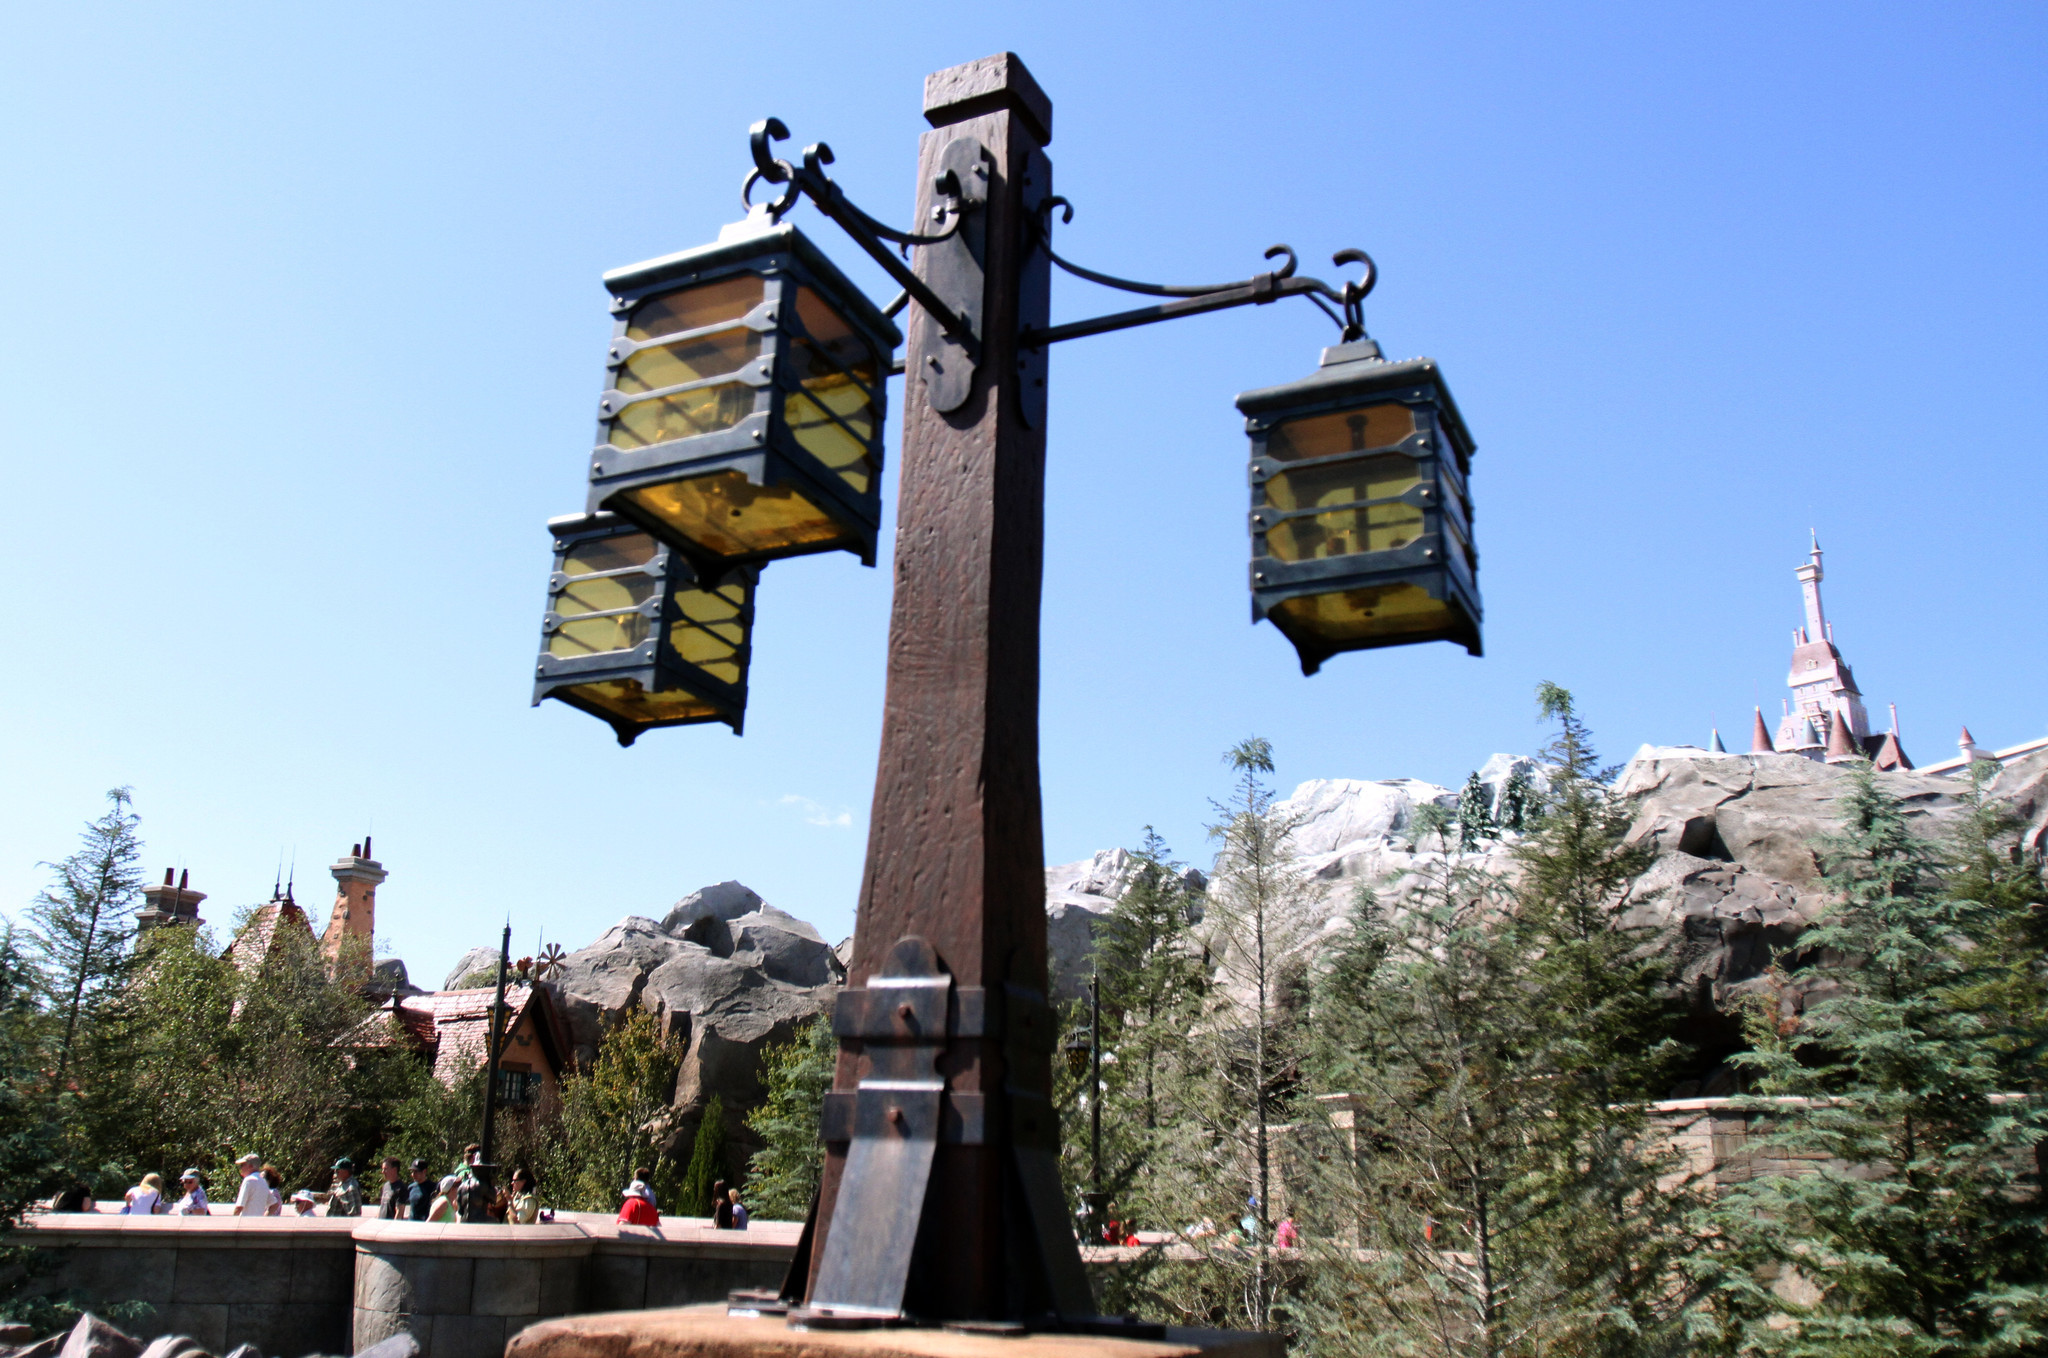 Pictures: New Fantasyland at Walt Disney World